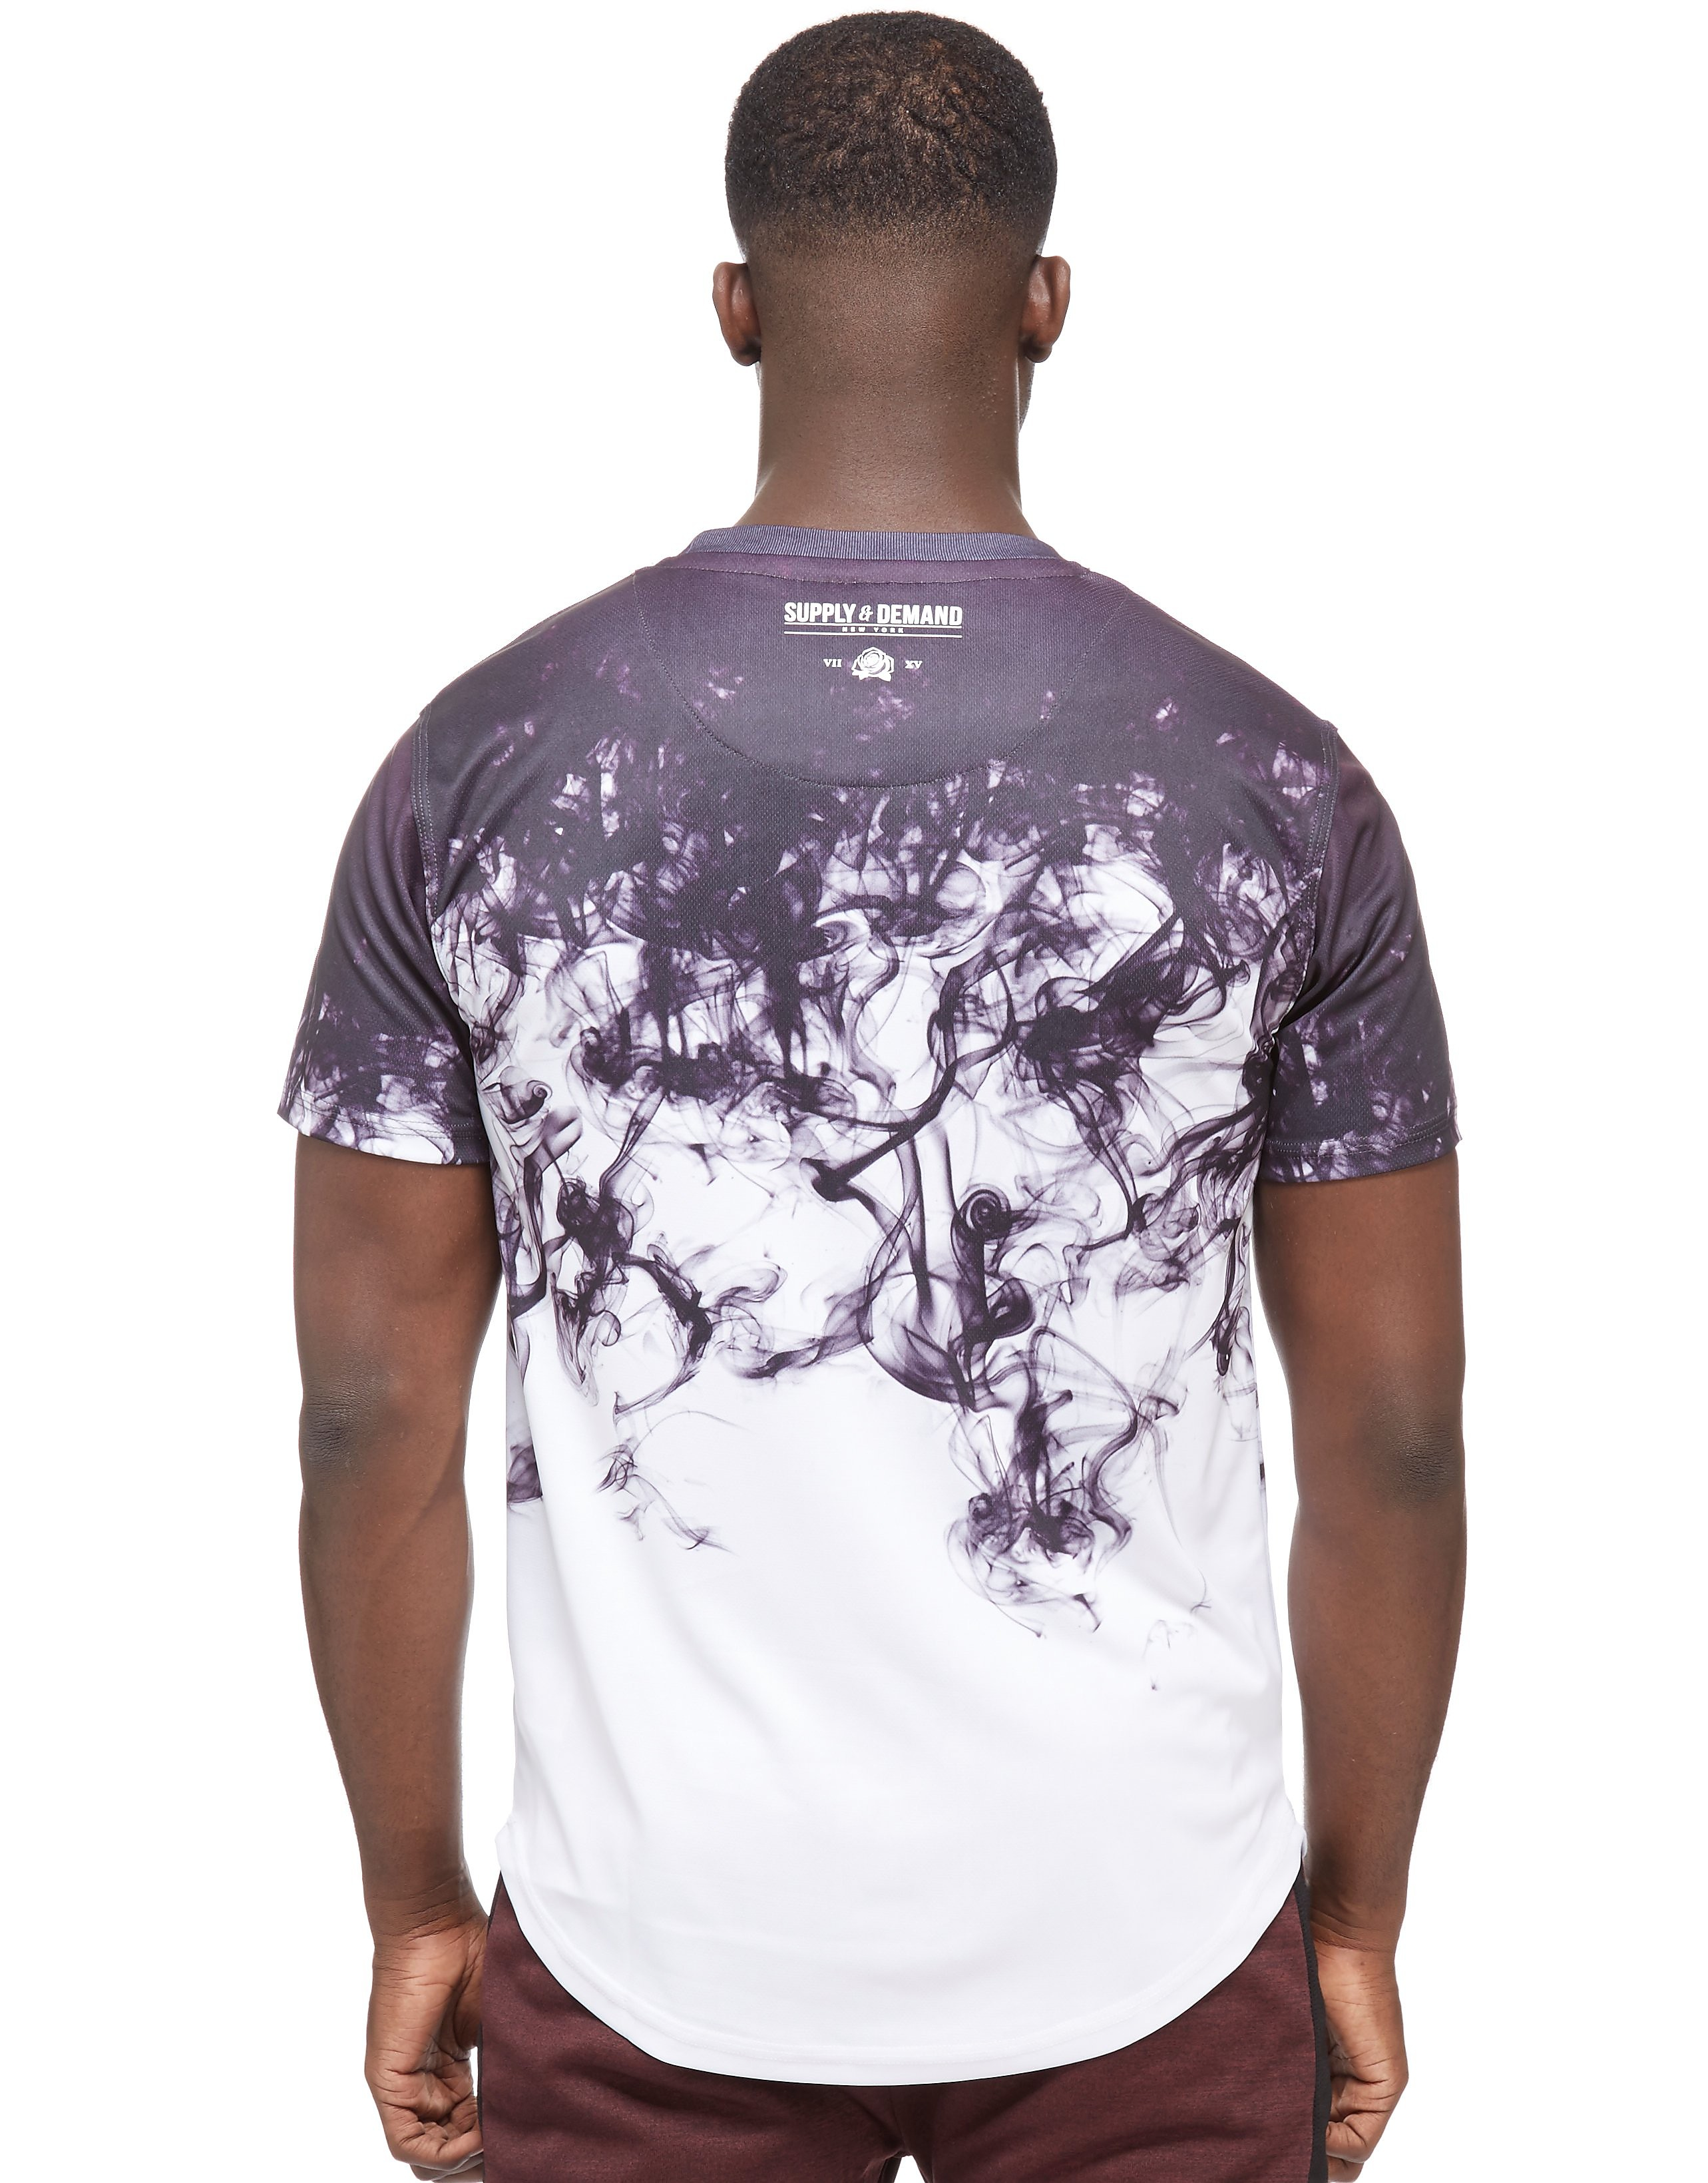 Supply & Demand Submerge T-shirt